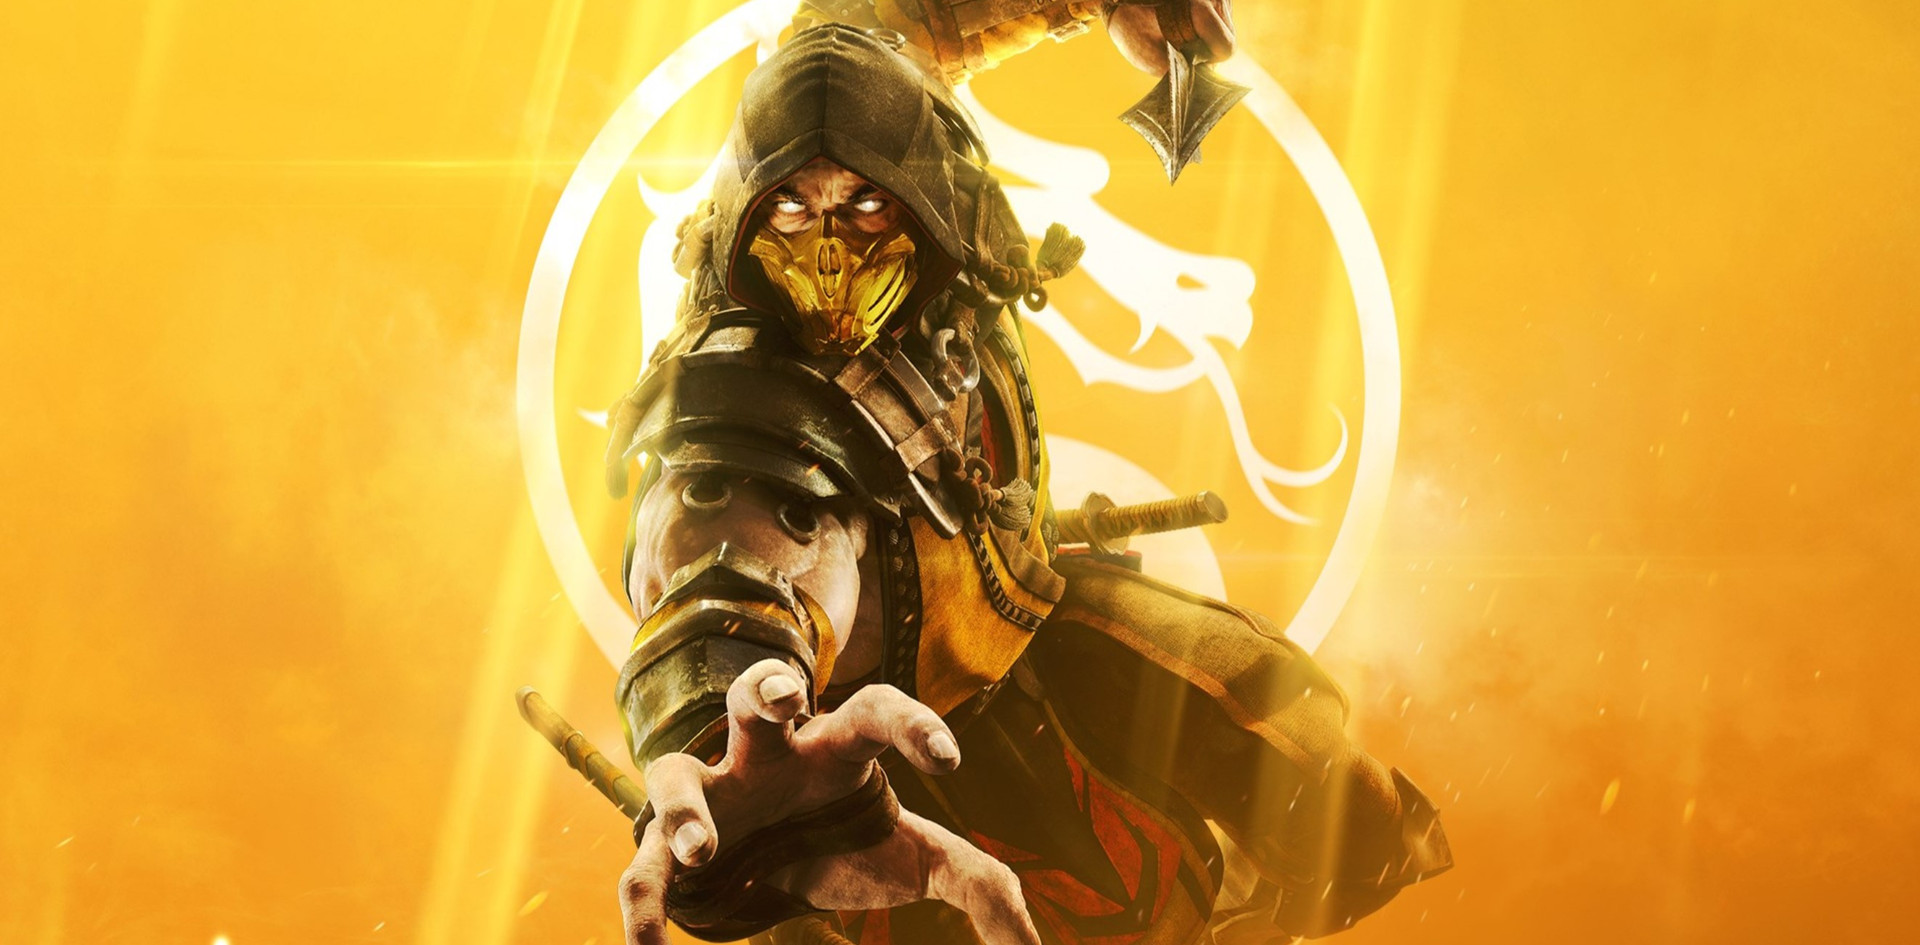 Mortal Kombat 11 Digital game PC Windows